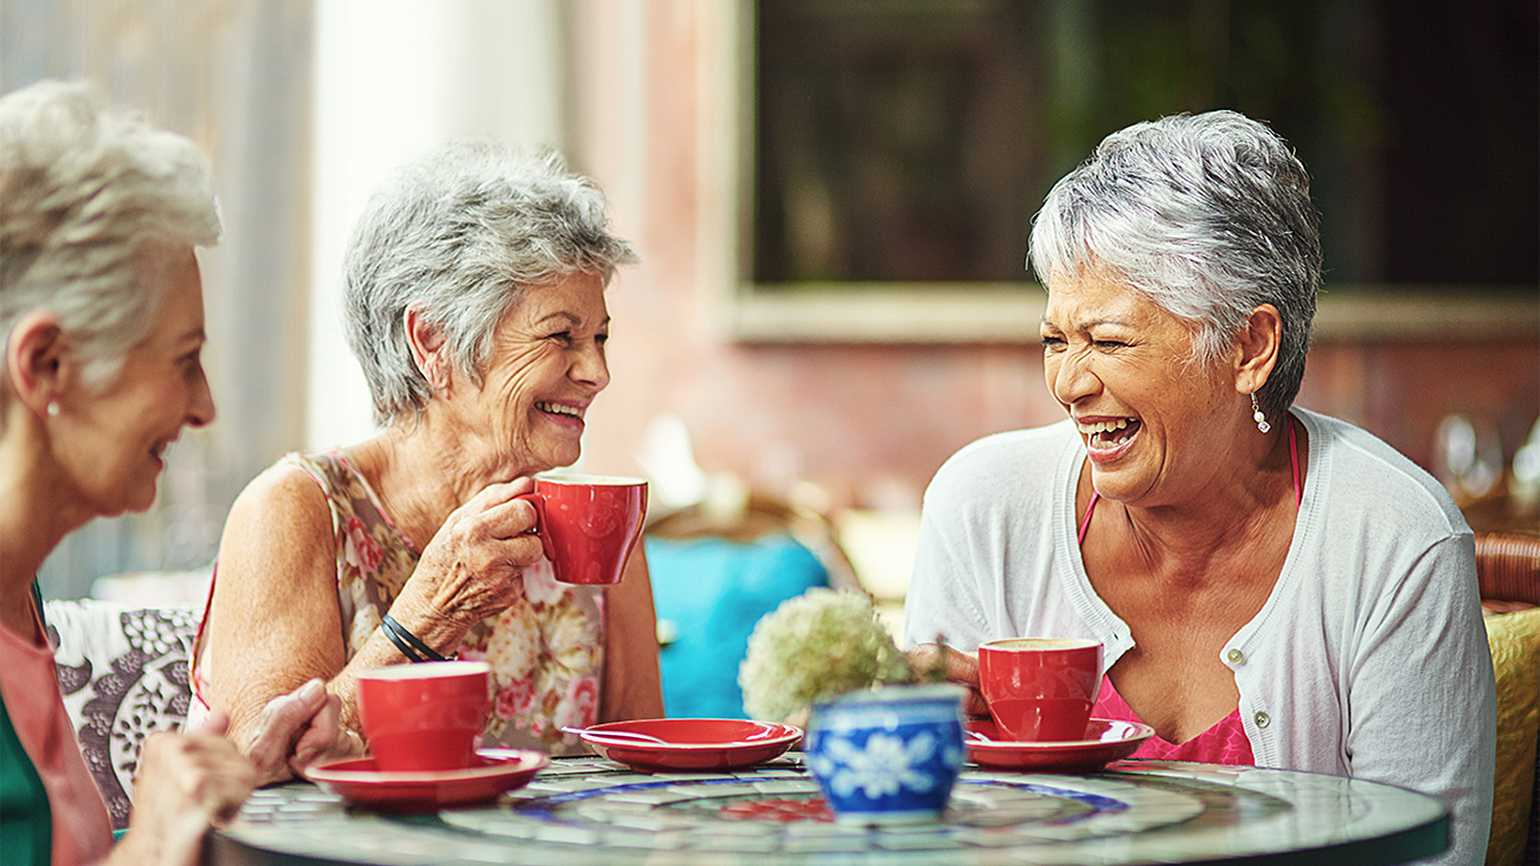 Senior women laughing over coffee